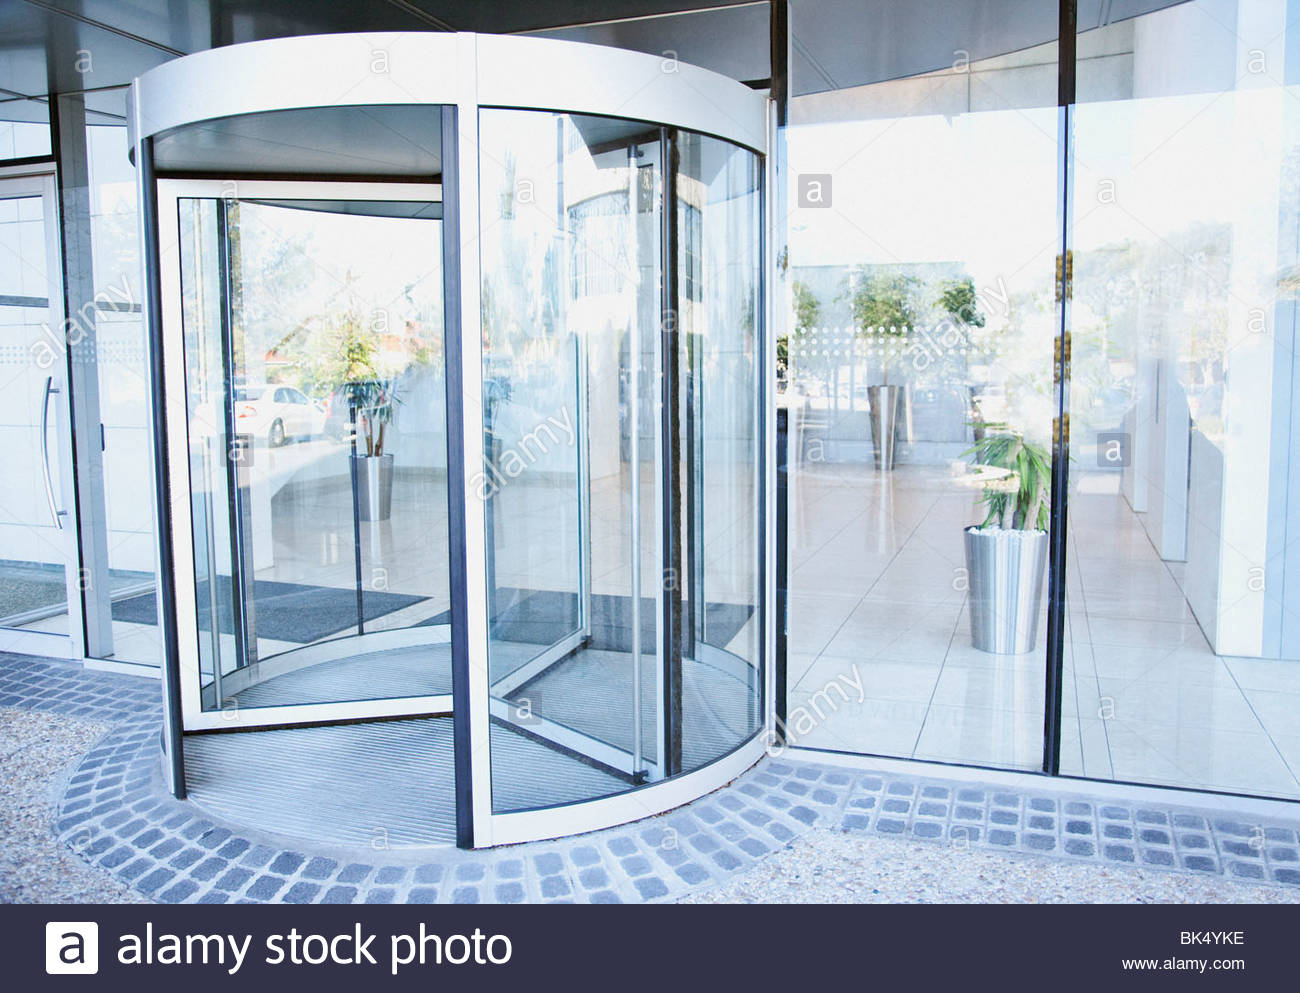 Modern entrance with revolving door - Stock Image & Rotating Door Stock Photos u0026 Rotating Door Stock Images - Alamy